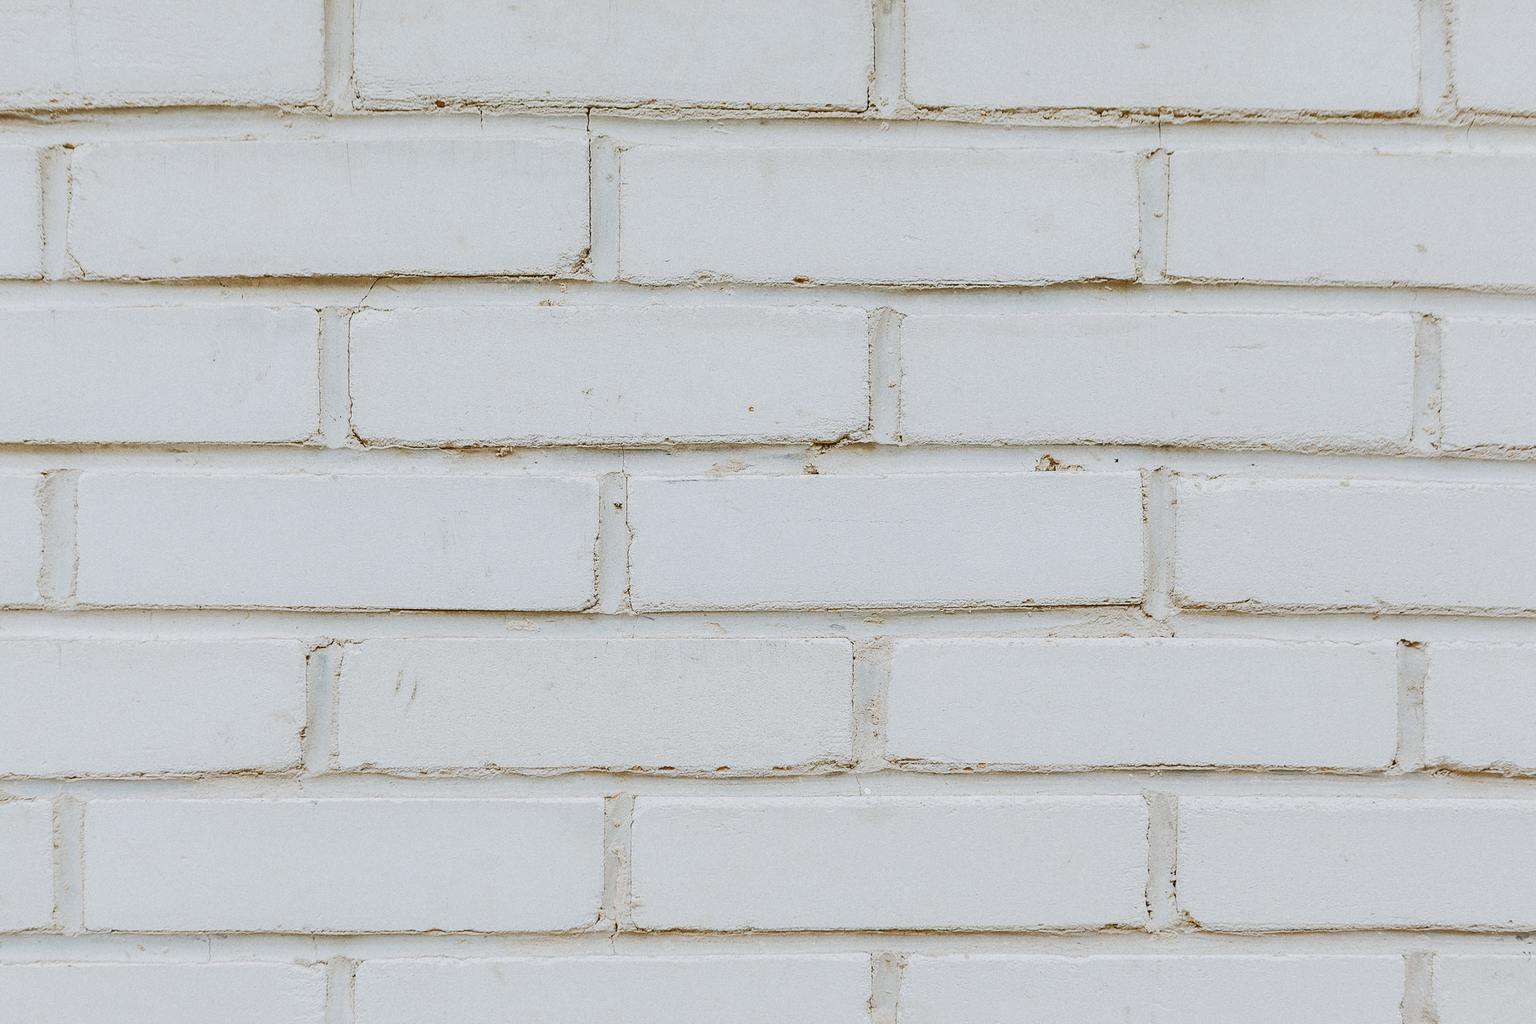 A white painted brick wall with stains